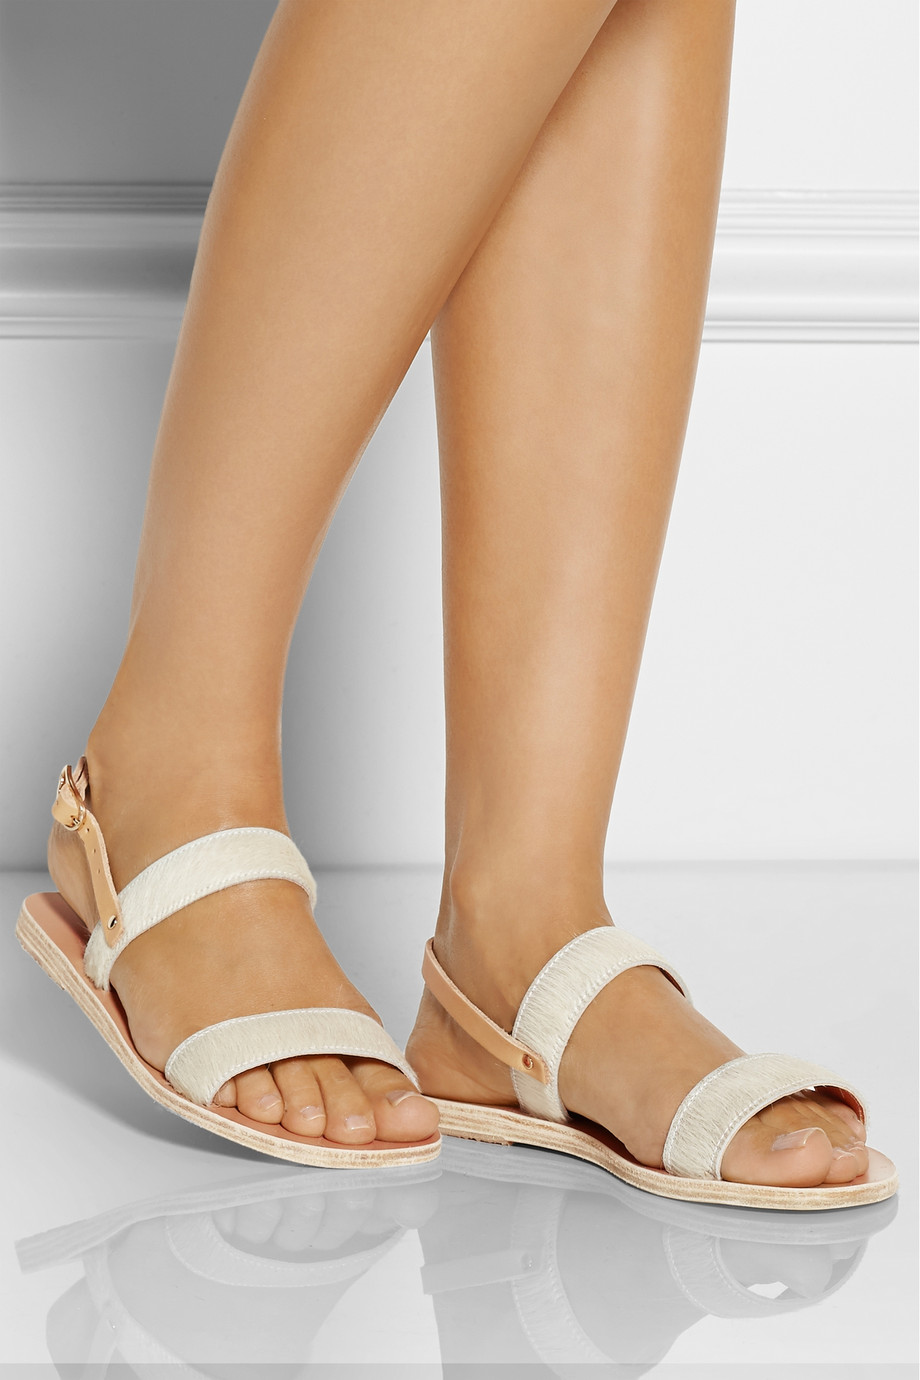 Clio sandals - White Ancient Greek Sandals Kgl8uQw